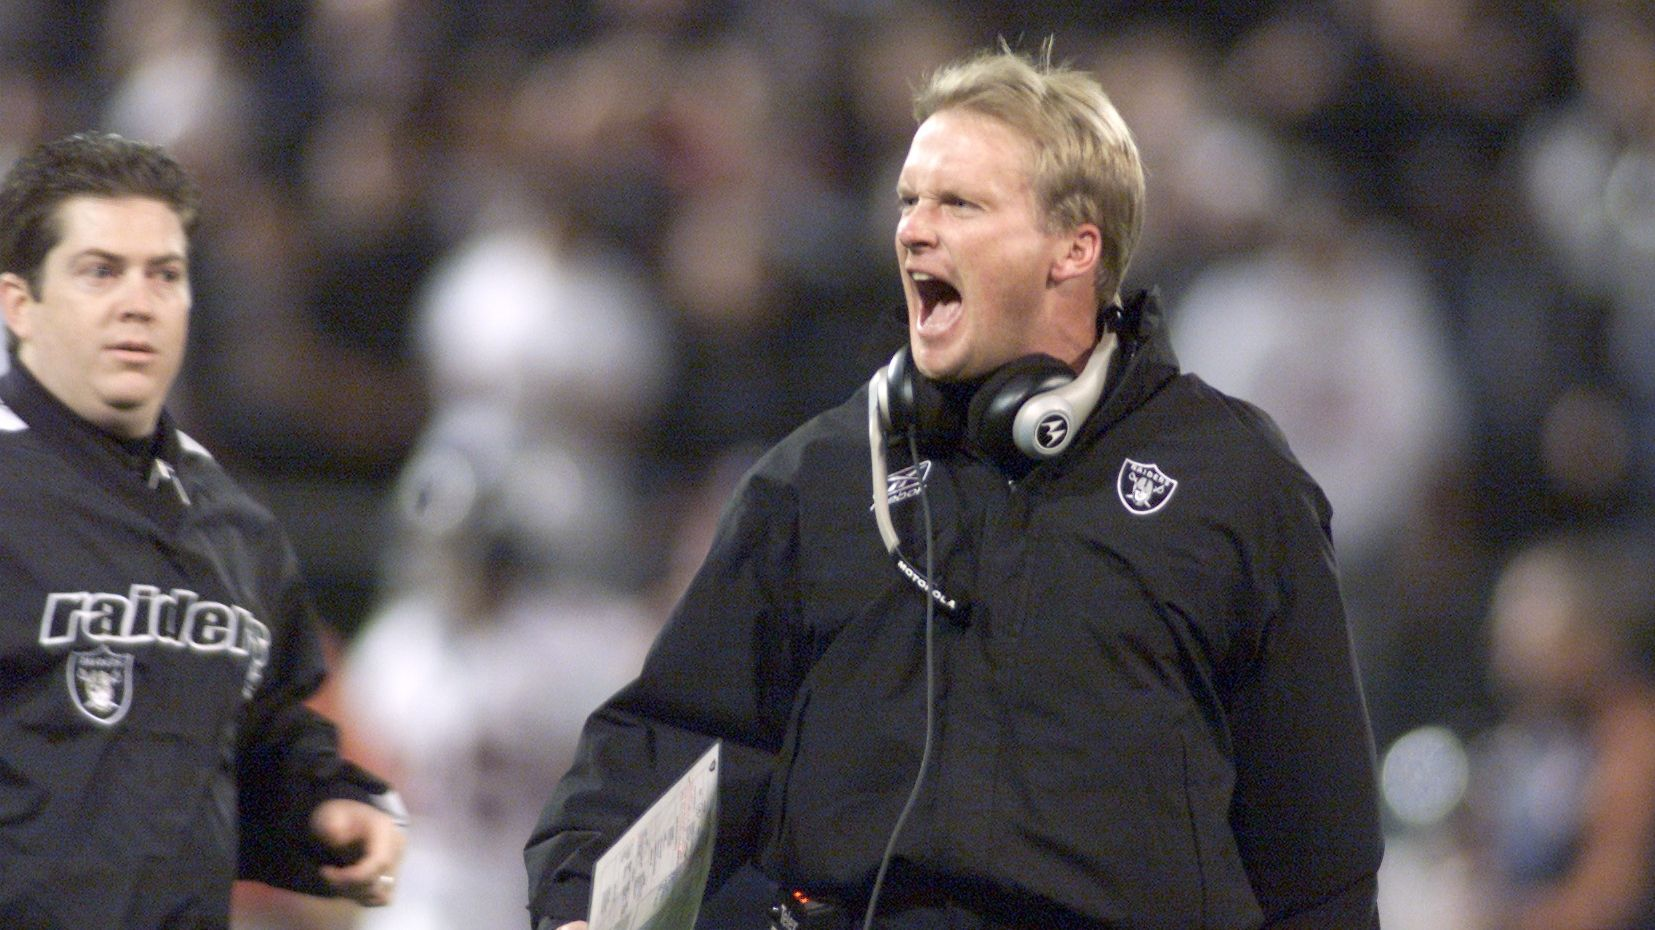 Gruden would bring passion and experience to NFL